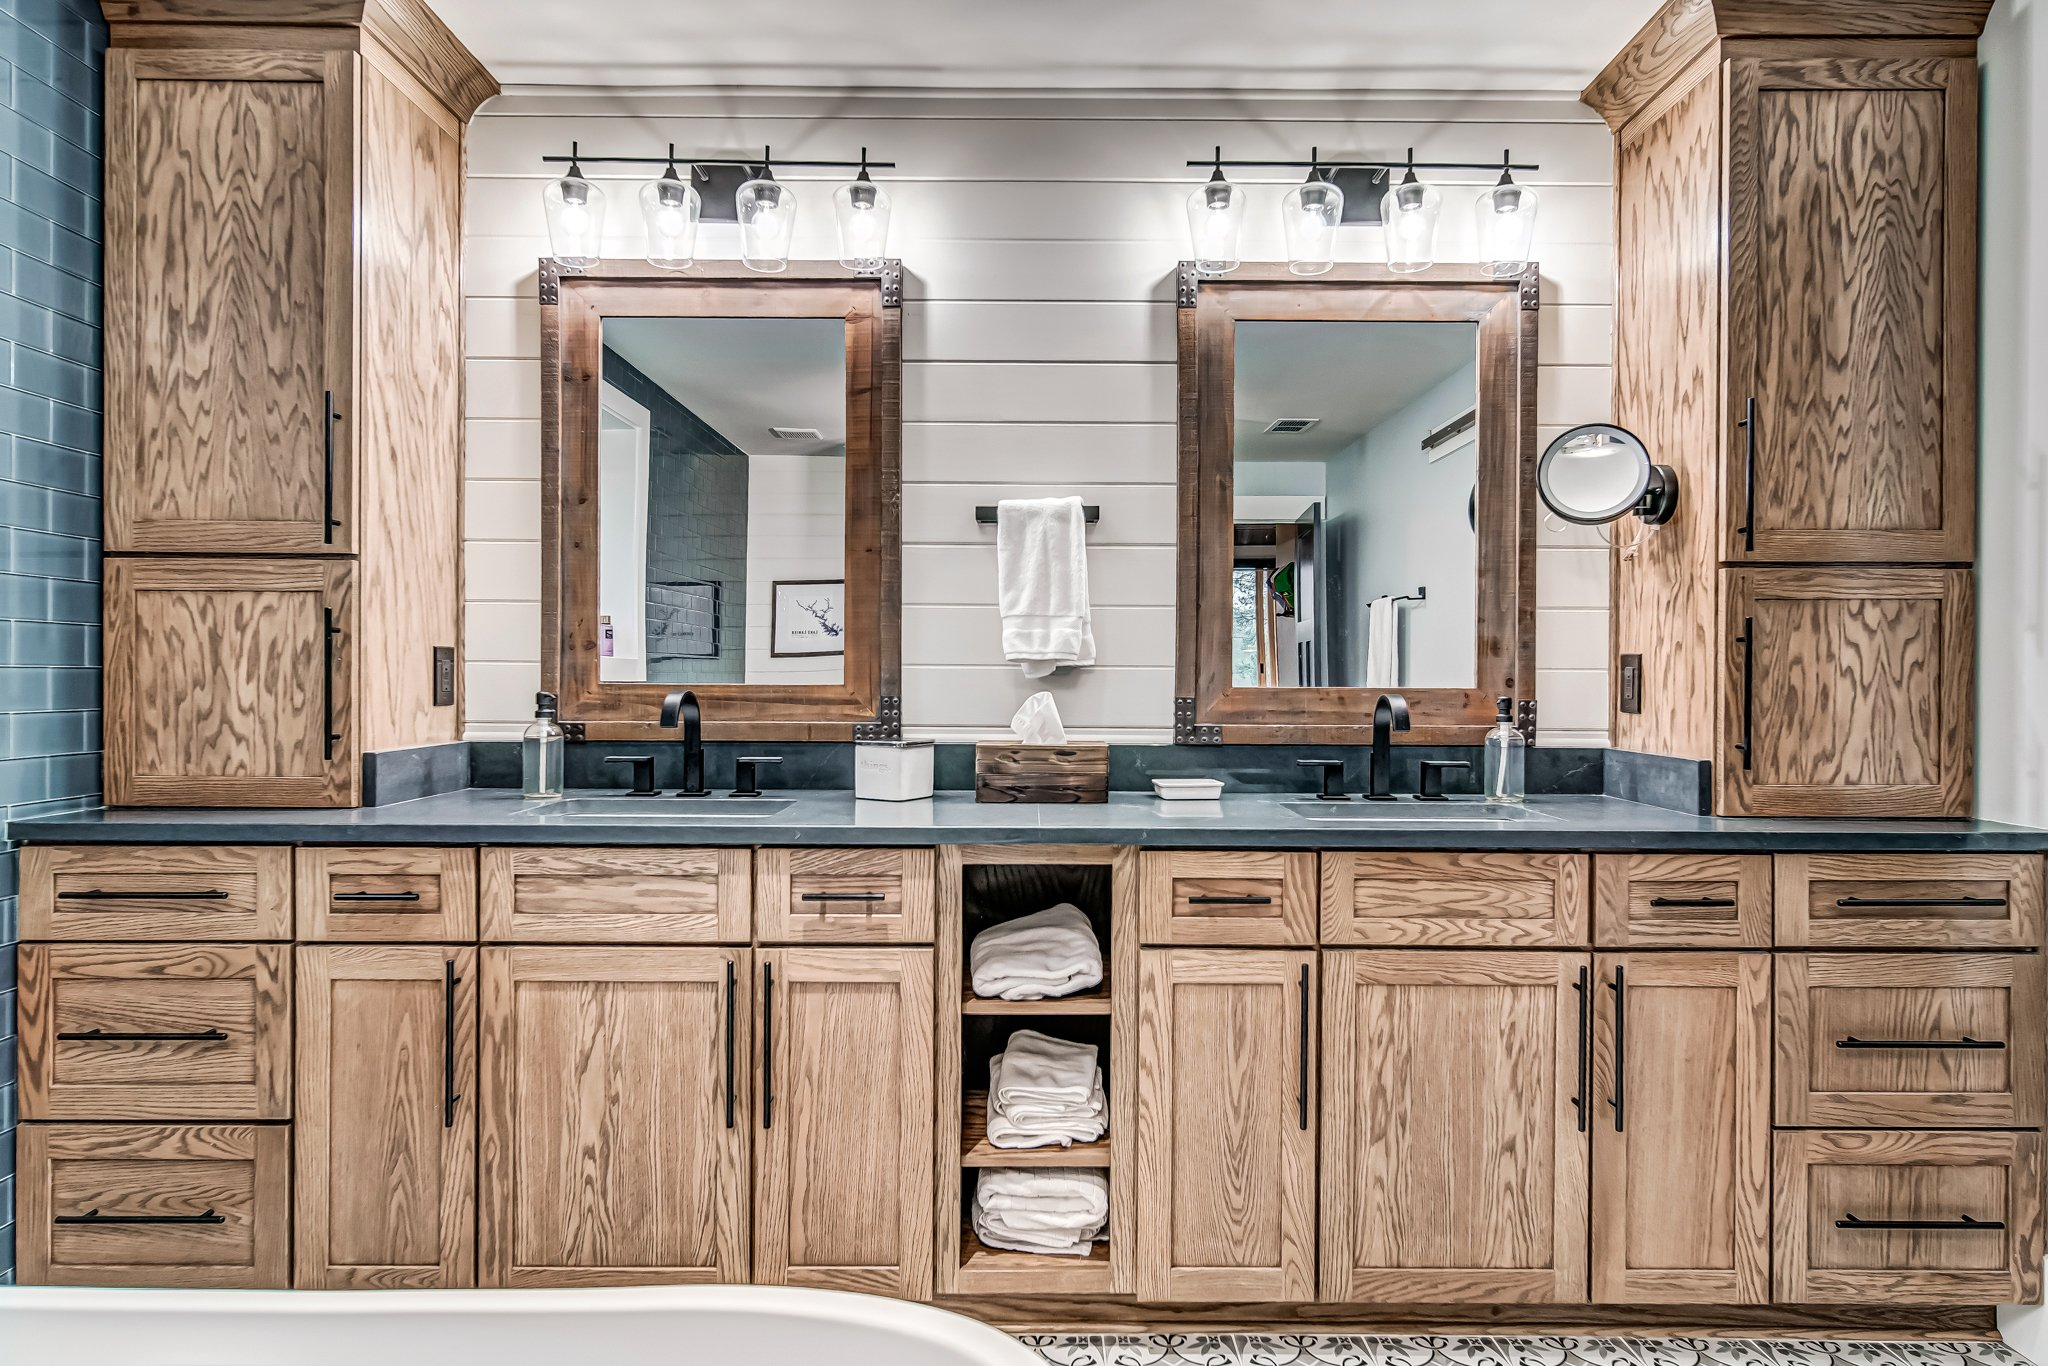 Jack and Jill bathroom photographed by real estate photographer at Cherokee Drone Services